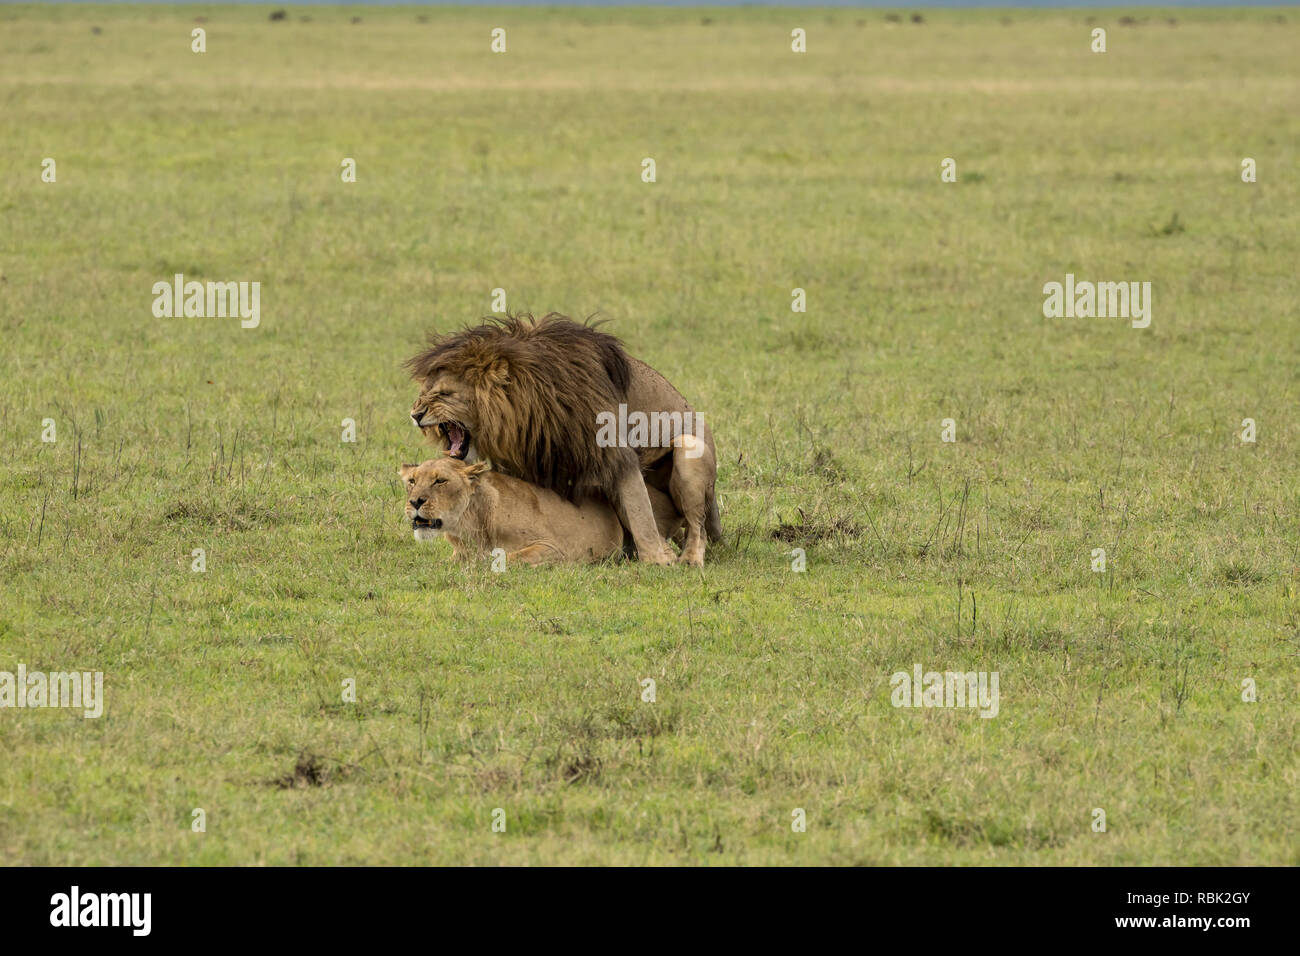 African Lion (Panthera leo) male and female mating on the open savannah in Ngorongoro Crater, Tanzania - Stock Image